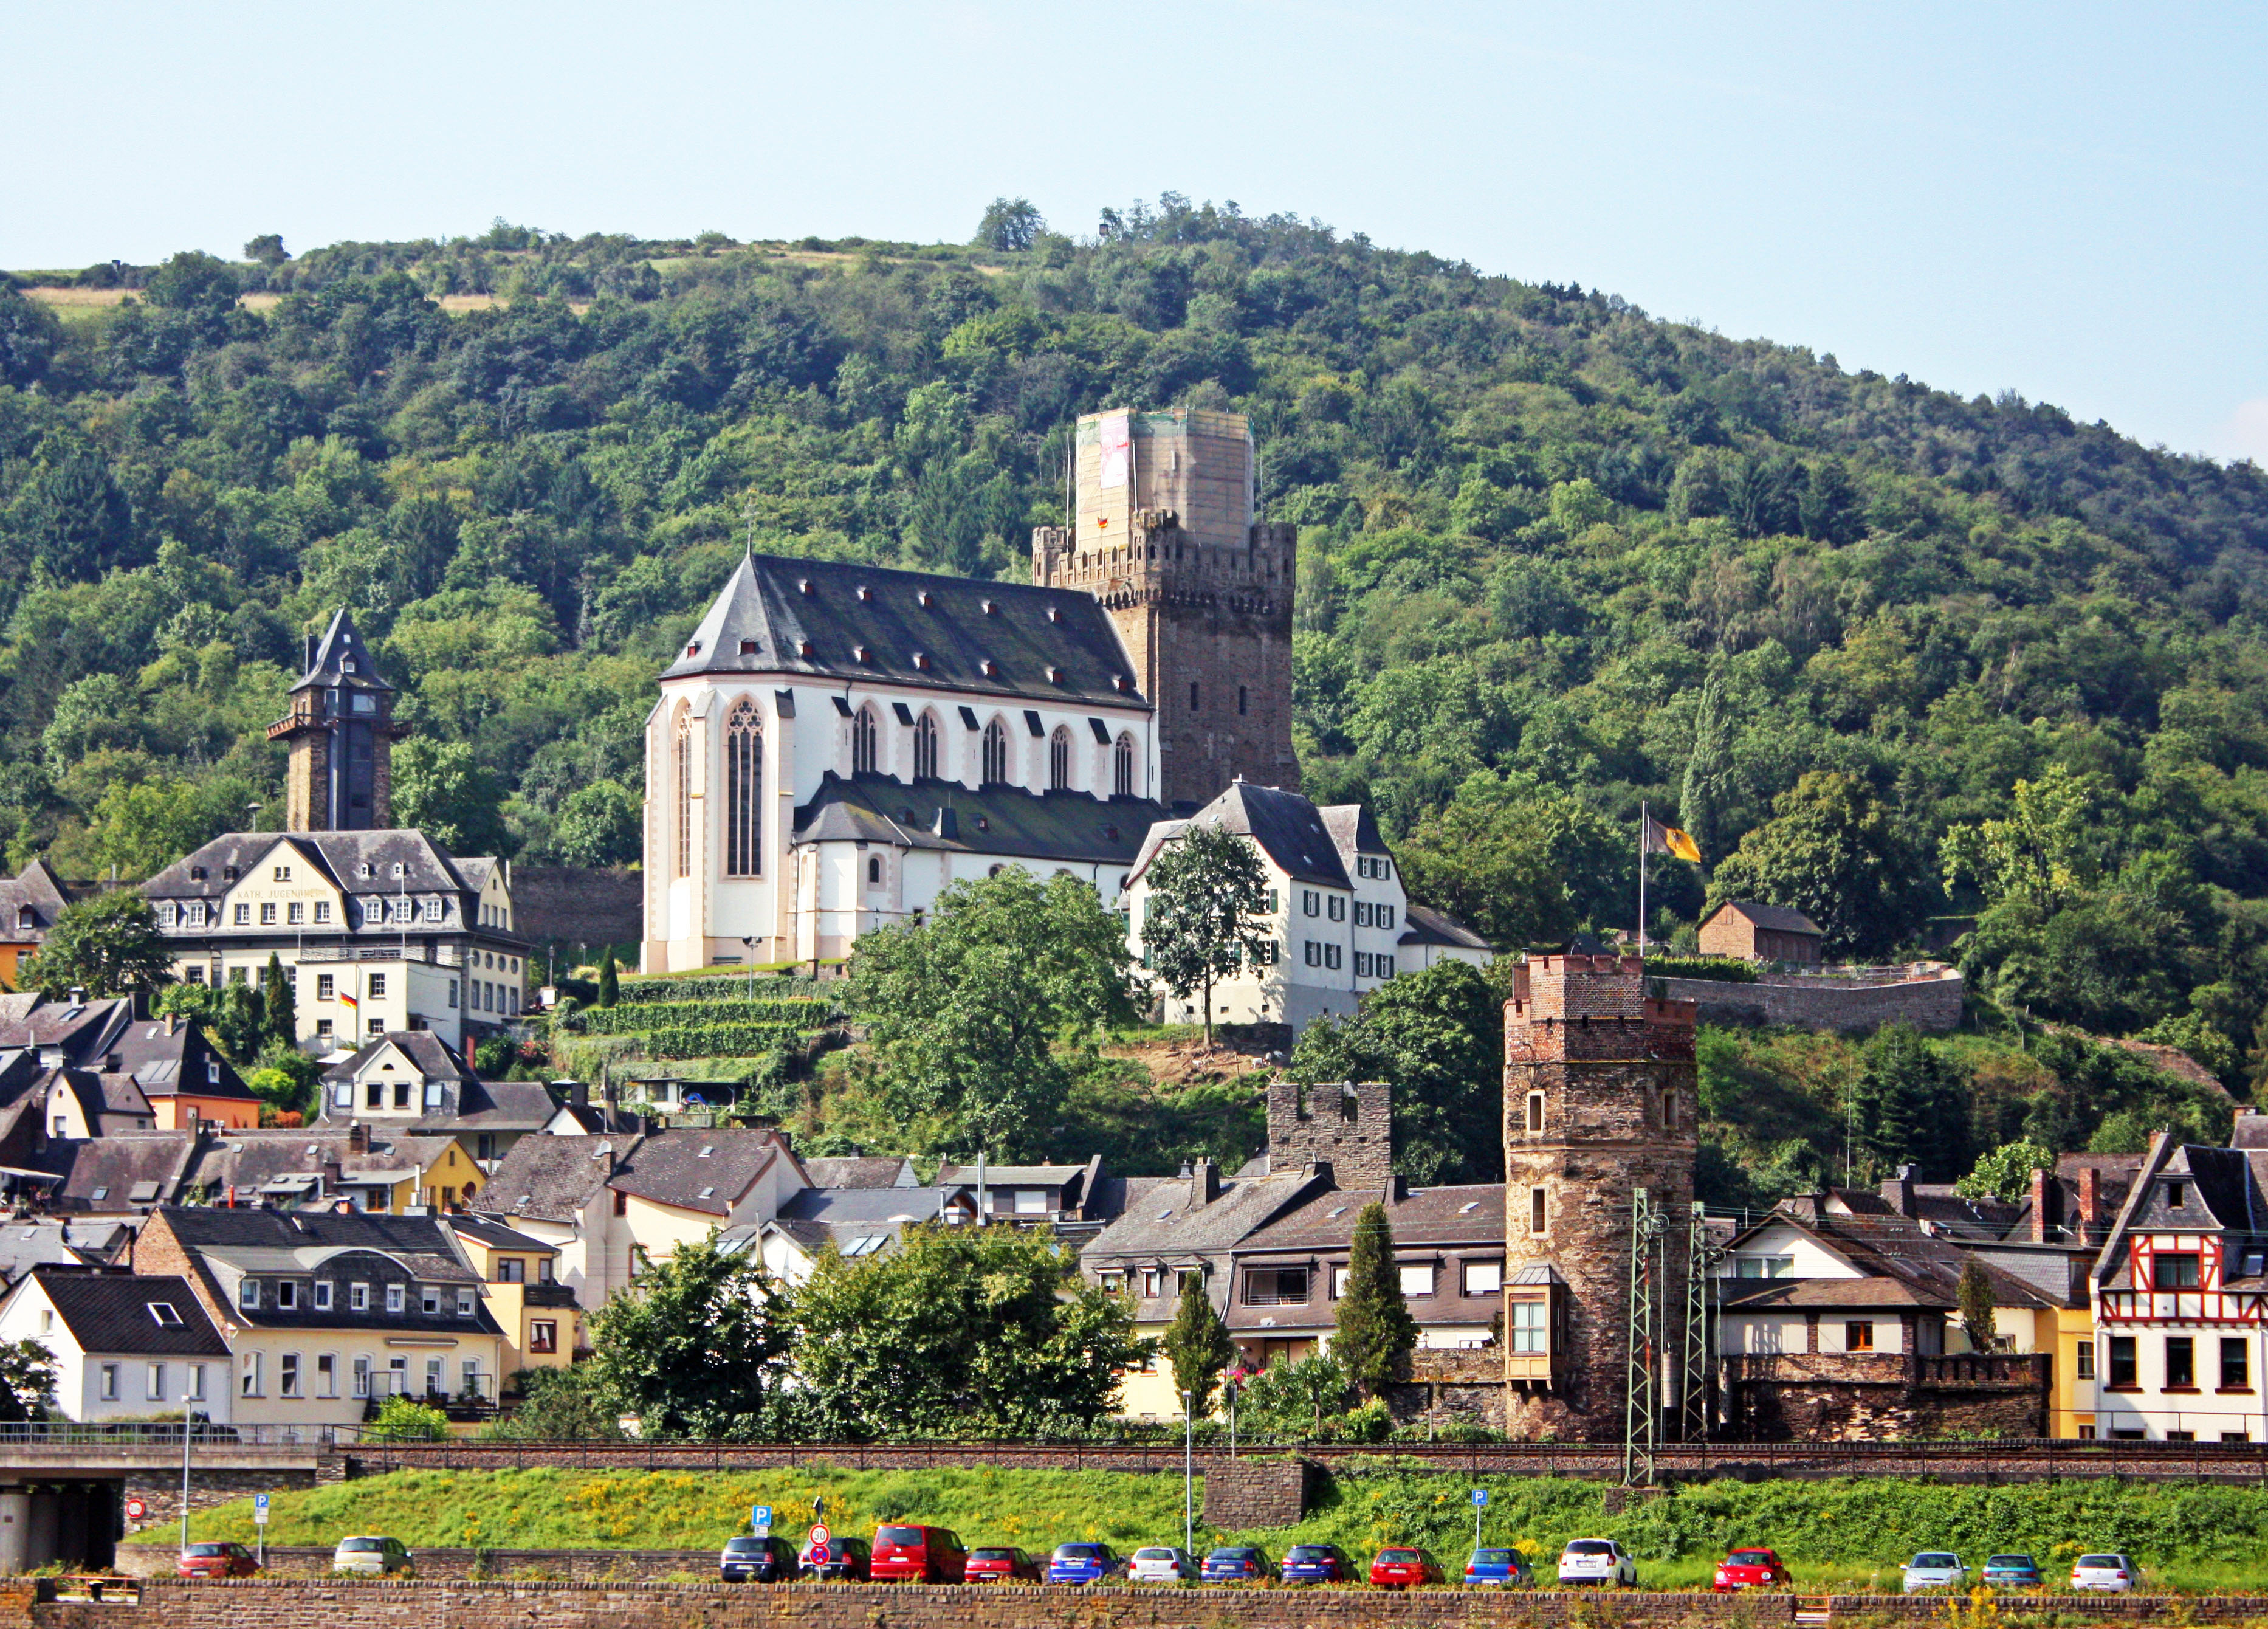 Another picturesque town along the Rhine.